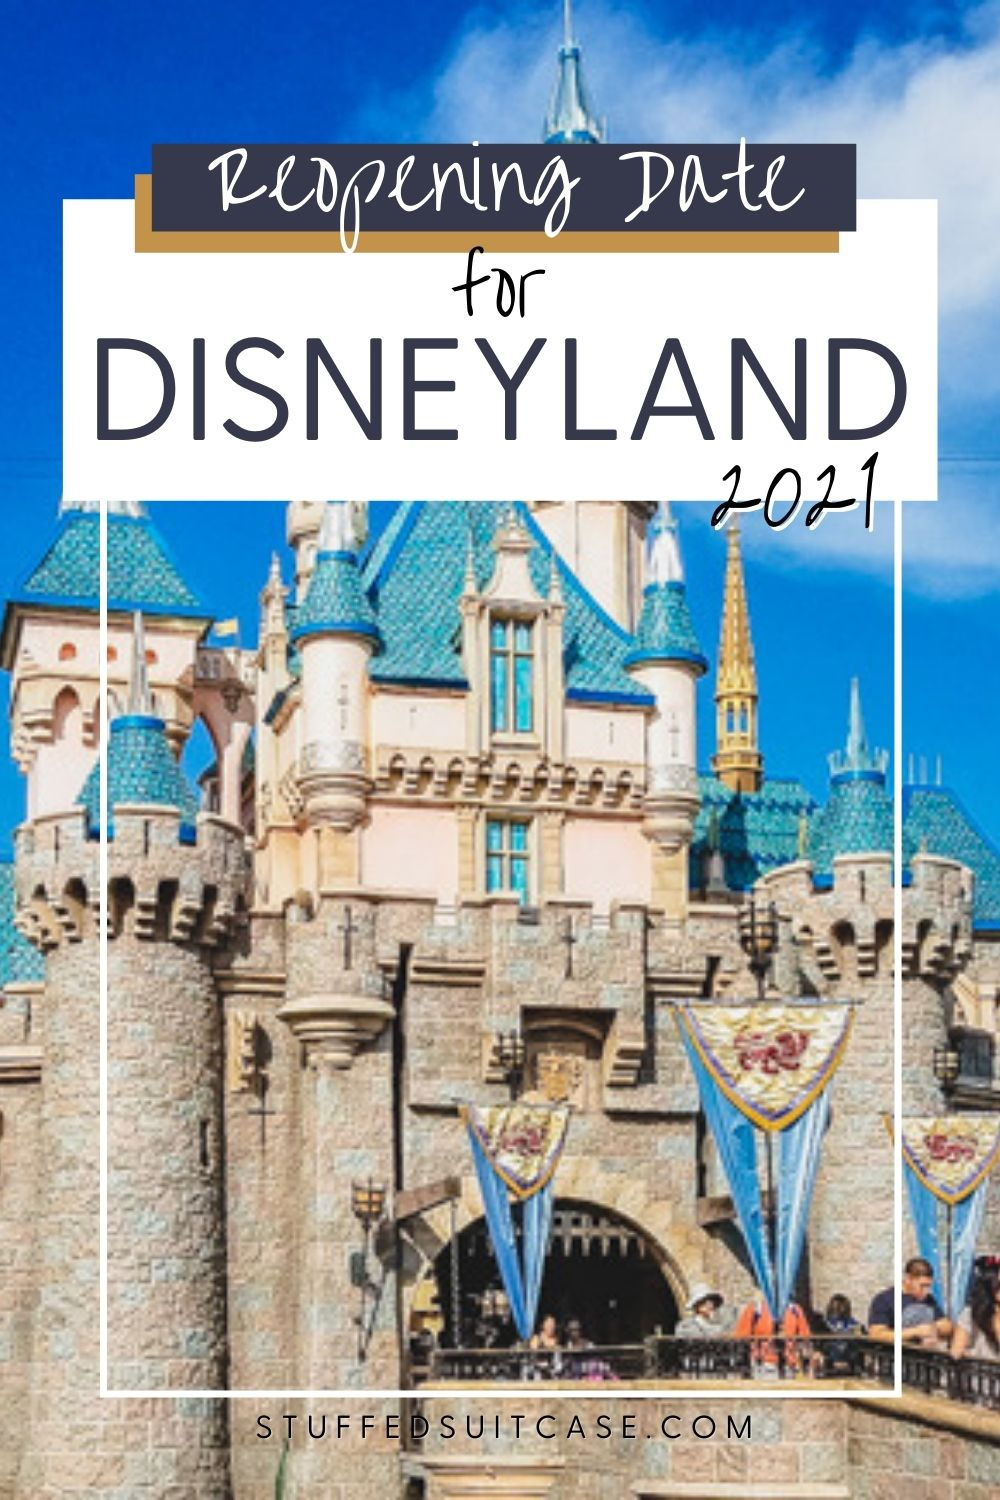 disneyland castle with text overlay for disneyland reopening 2021